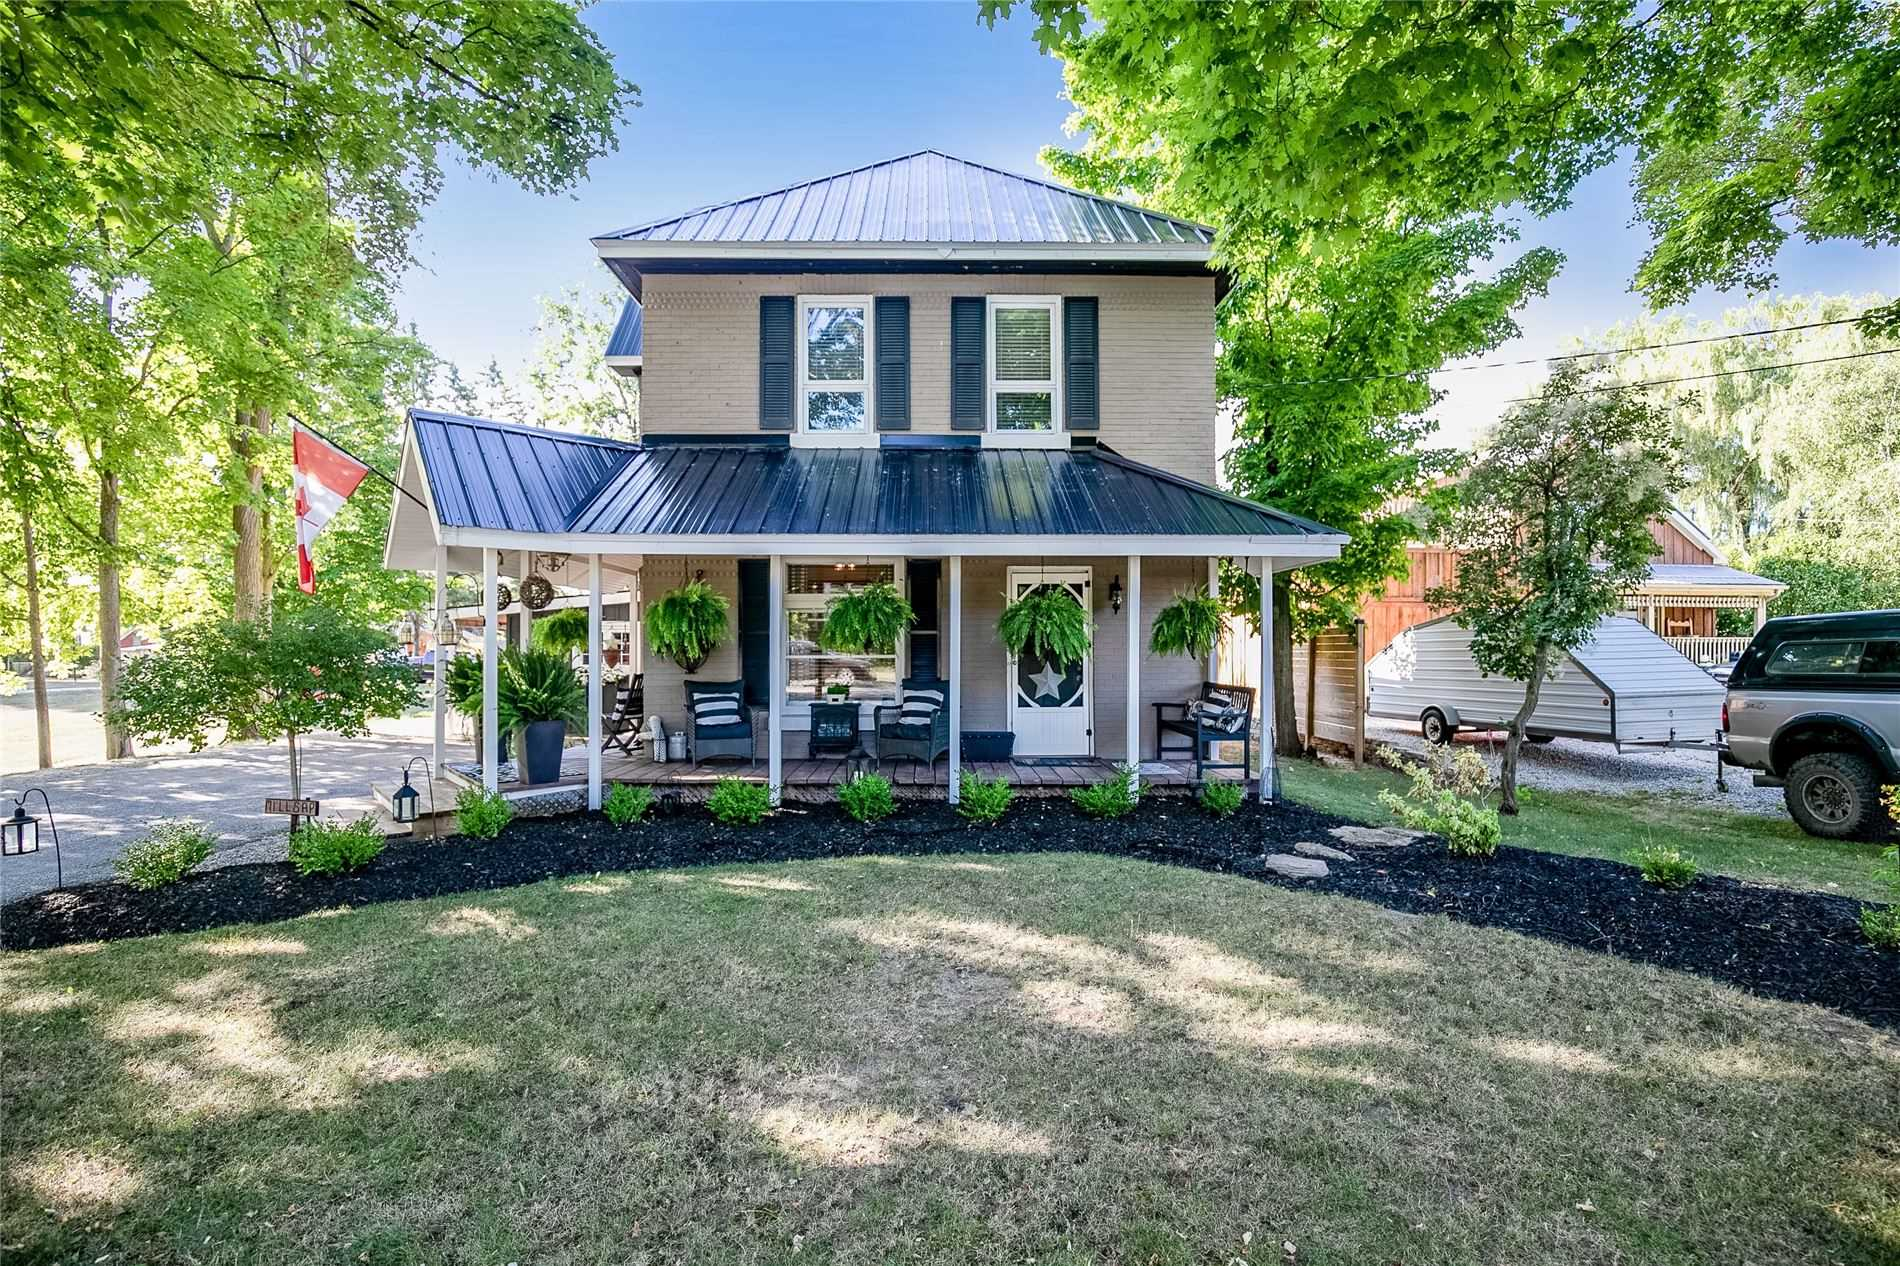 1800'S Century Home In Quaint Town Of Creemore On 66 X165 Lot. 1700 Sqft Renovated Home W/Mix Of Rustic & Modern Flair. 9Ft Ceilings, Maple Hw Flrs, Custom Pine Kitch Cabinets, Quartz Counters, Tile Backsplash, Custom Lndry Area W/Built-In Cabinets, Sunken Fam Rm W/Gas Fp & W/O To The Back Yard/Large Deck. Upgrades Includ Pot Lighting On Main Lvl, 200 Amp Panel, Lrg Storage Shed, Steel Roof Plus New Furnace, Hot Water On Demand & Water Softener-All 2018.